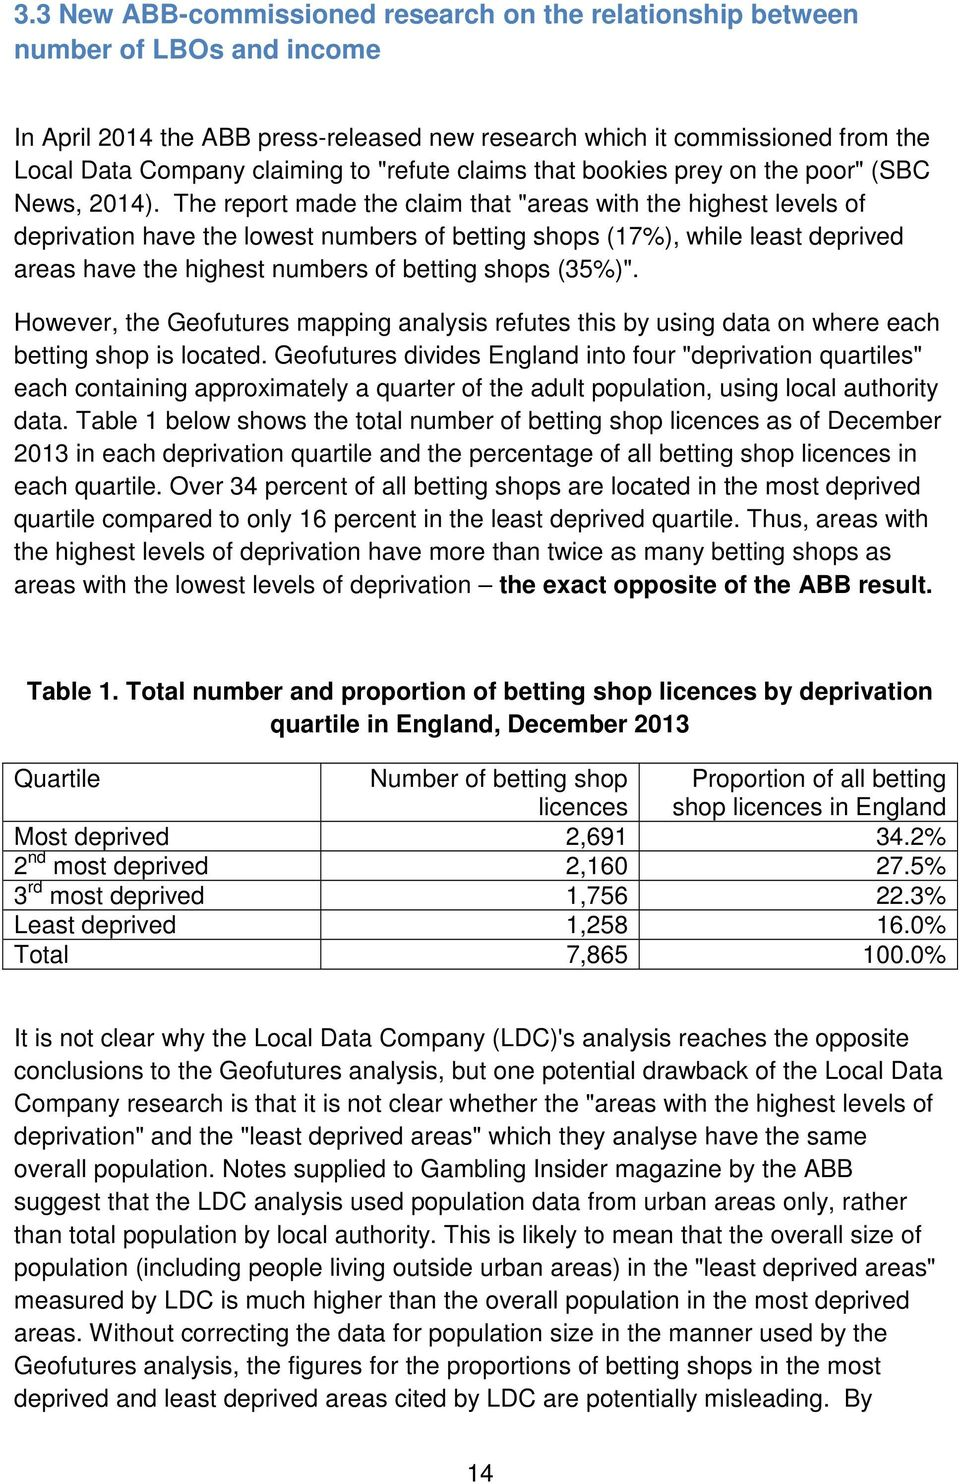 "The report made the claim that ""areas with the highest levels of deprivation have the lowest numbers of betting shops (17%), while least deprived areas have the highest numbers of betting shops"